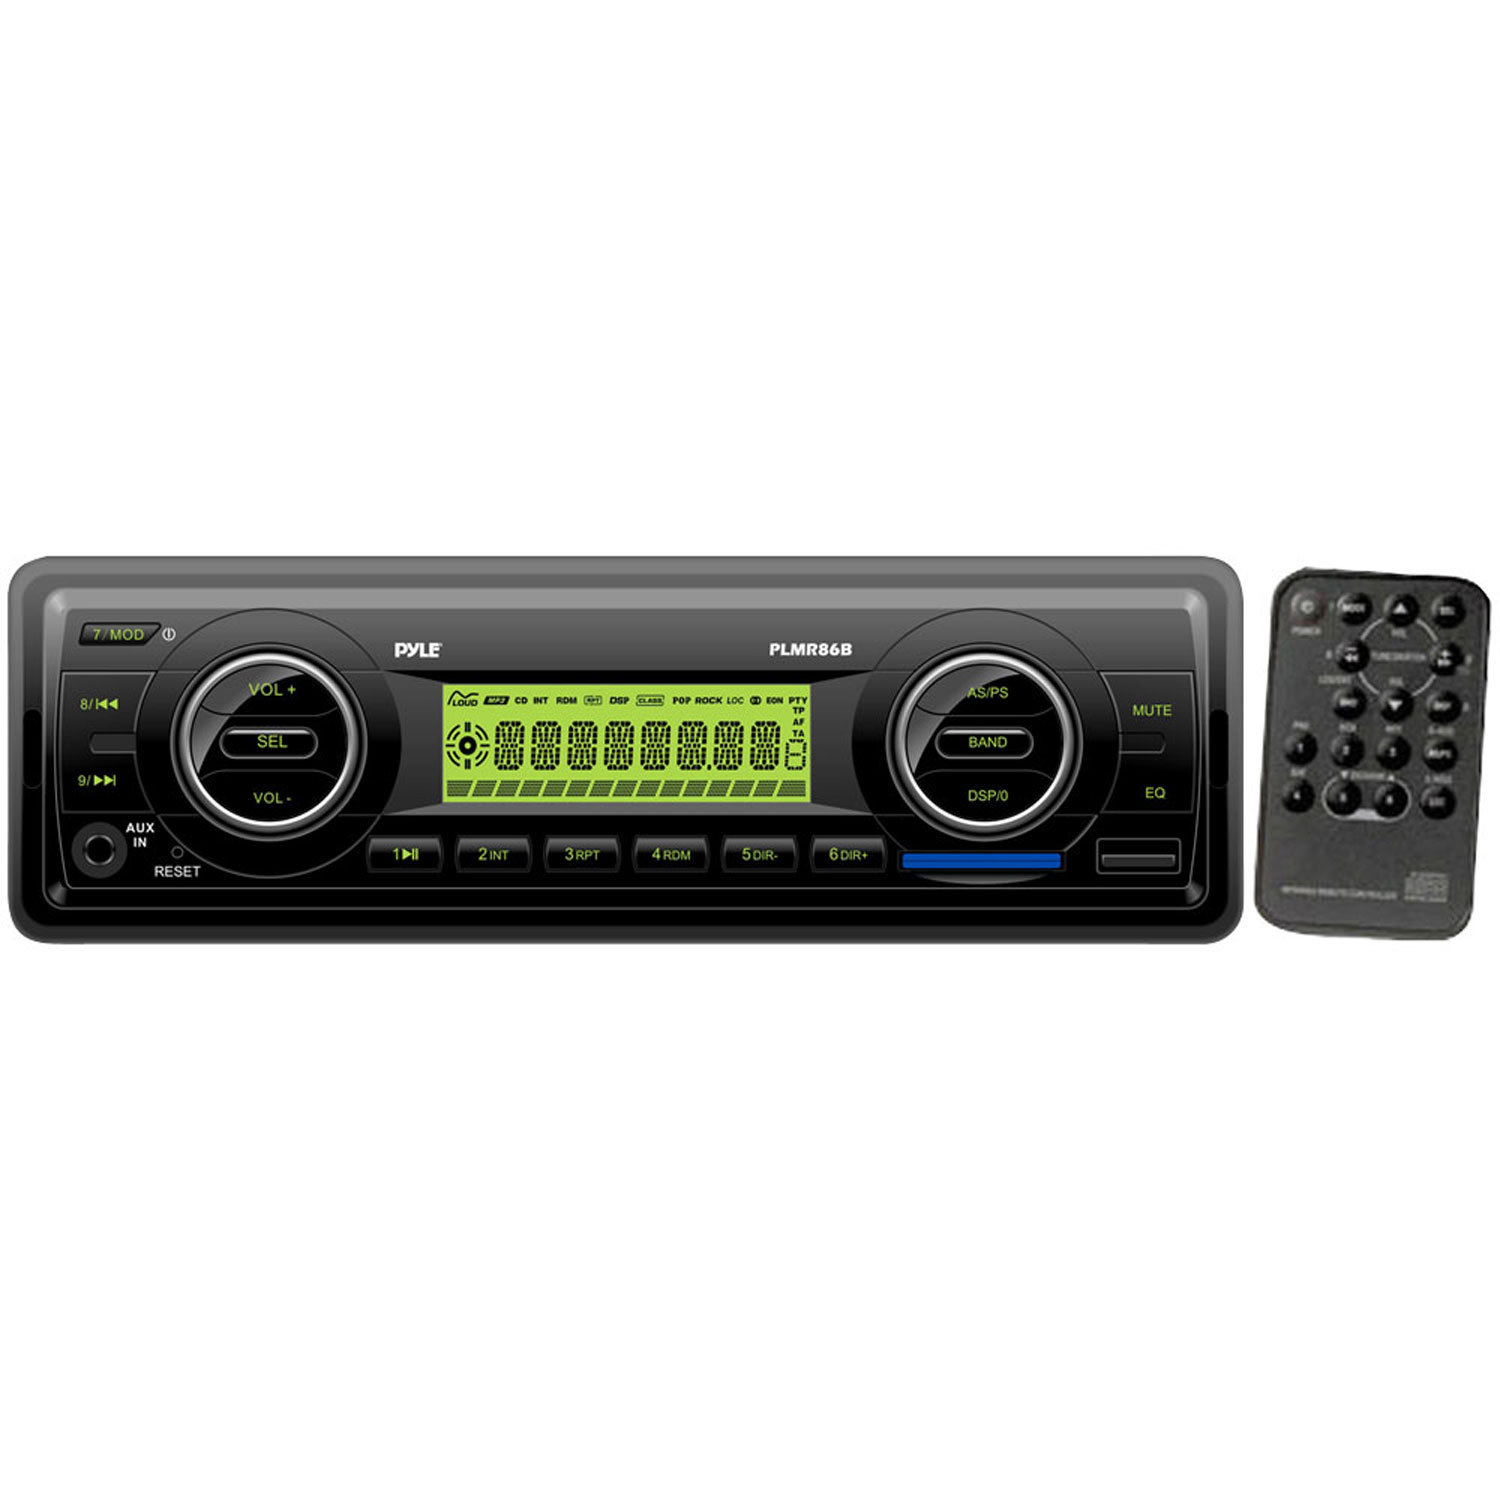 Pyle AM FM-MPX Electronic Tunning Radio w USB SD MMC (BLACK COLOR UNIT) by Pyle